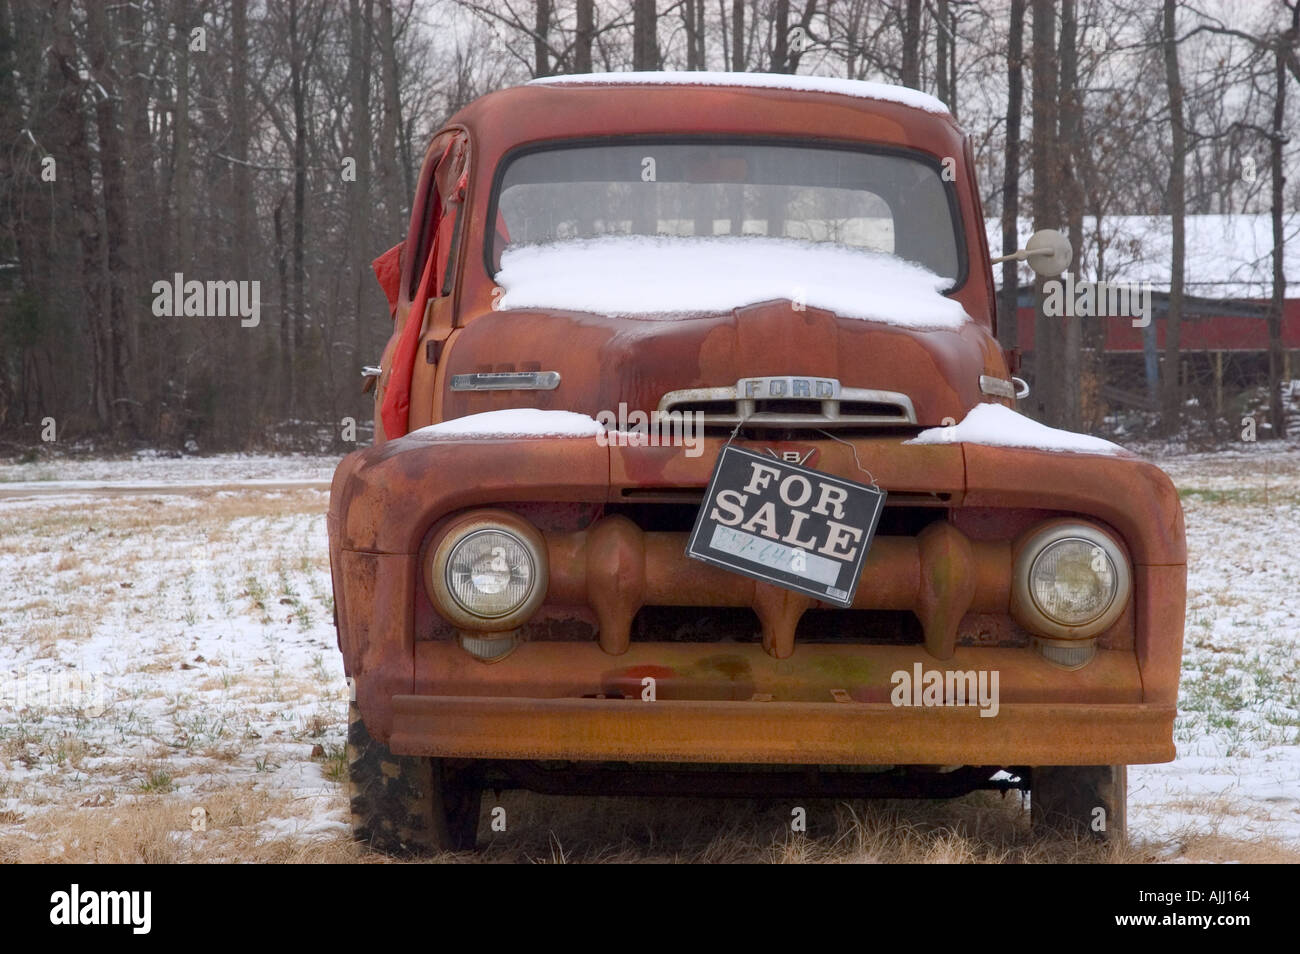 Old Truck For Sale Stock Photo: 2728291 - Alamy